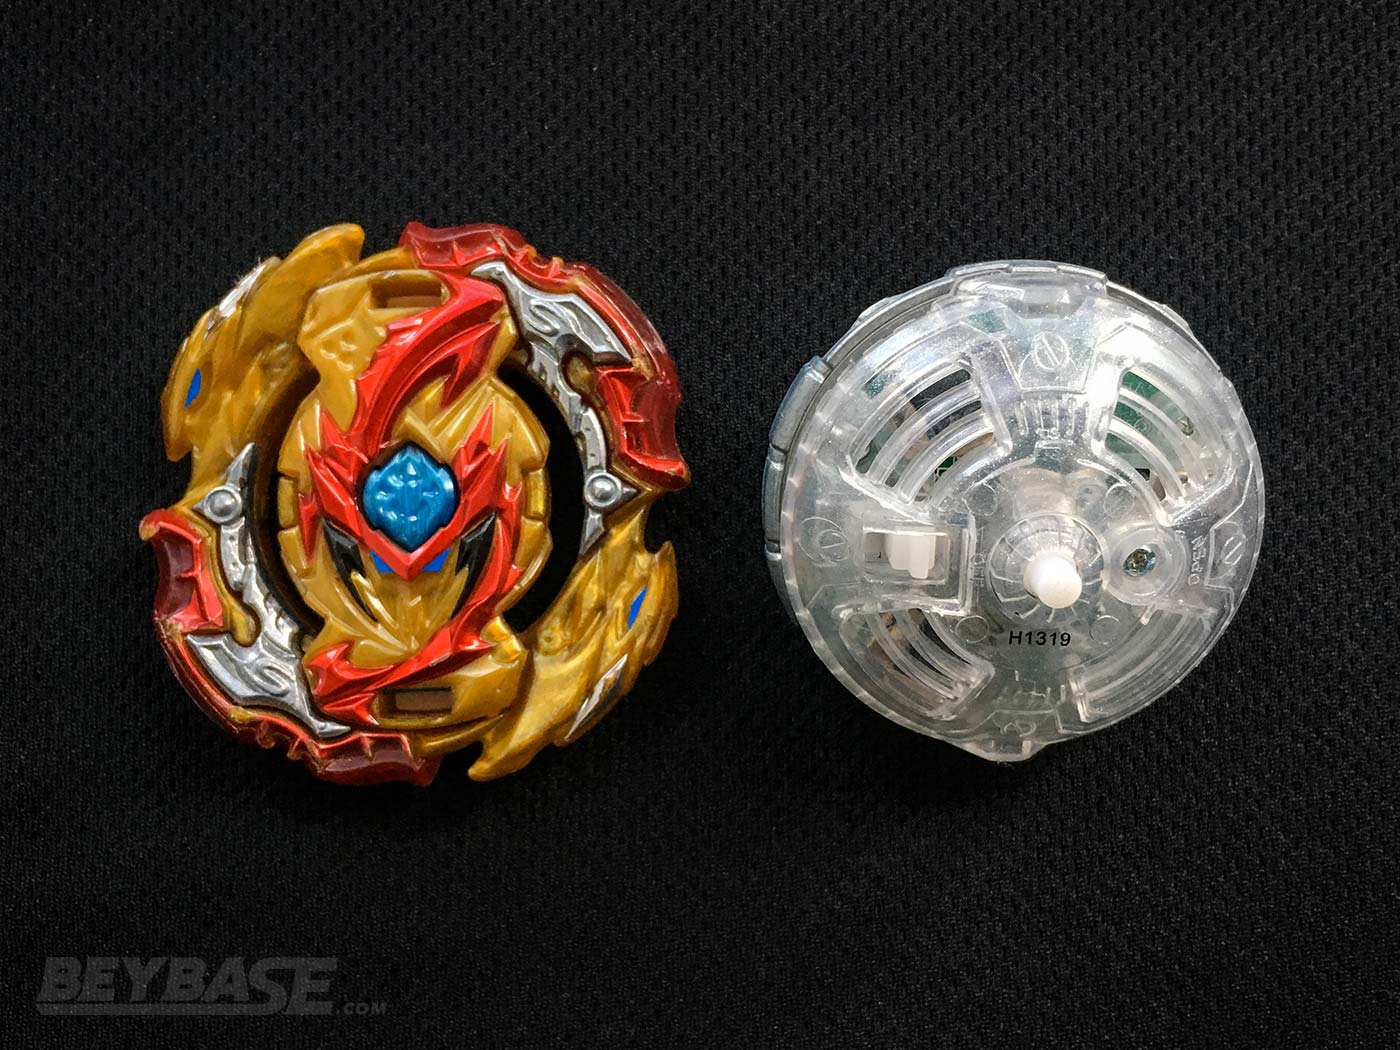 The Supreme One's Underrated Best Beyblade Burst Combo Lord Spriggan Hybrid – Top View